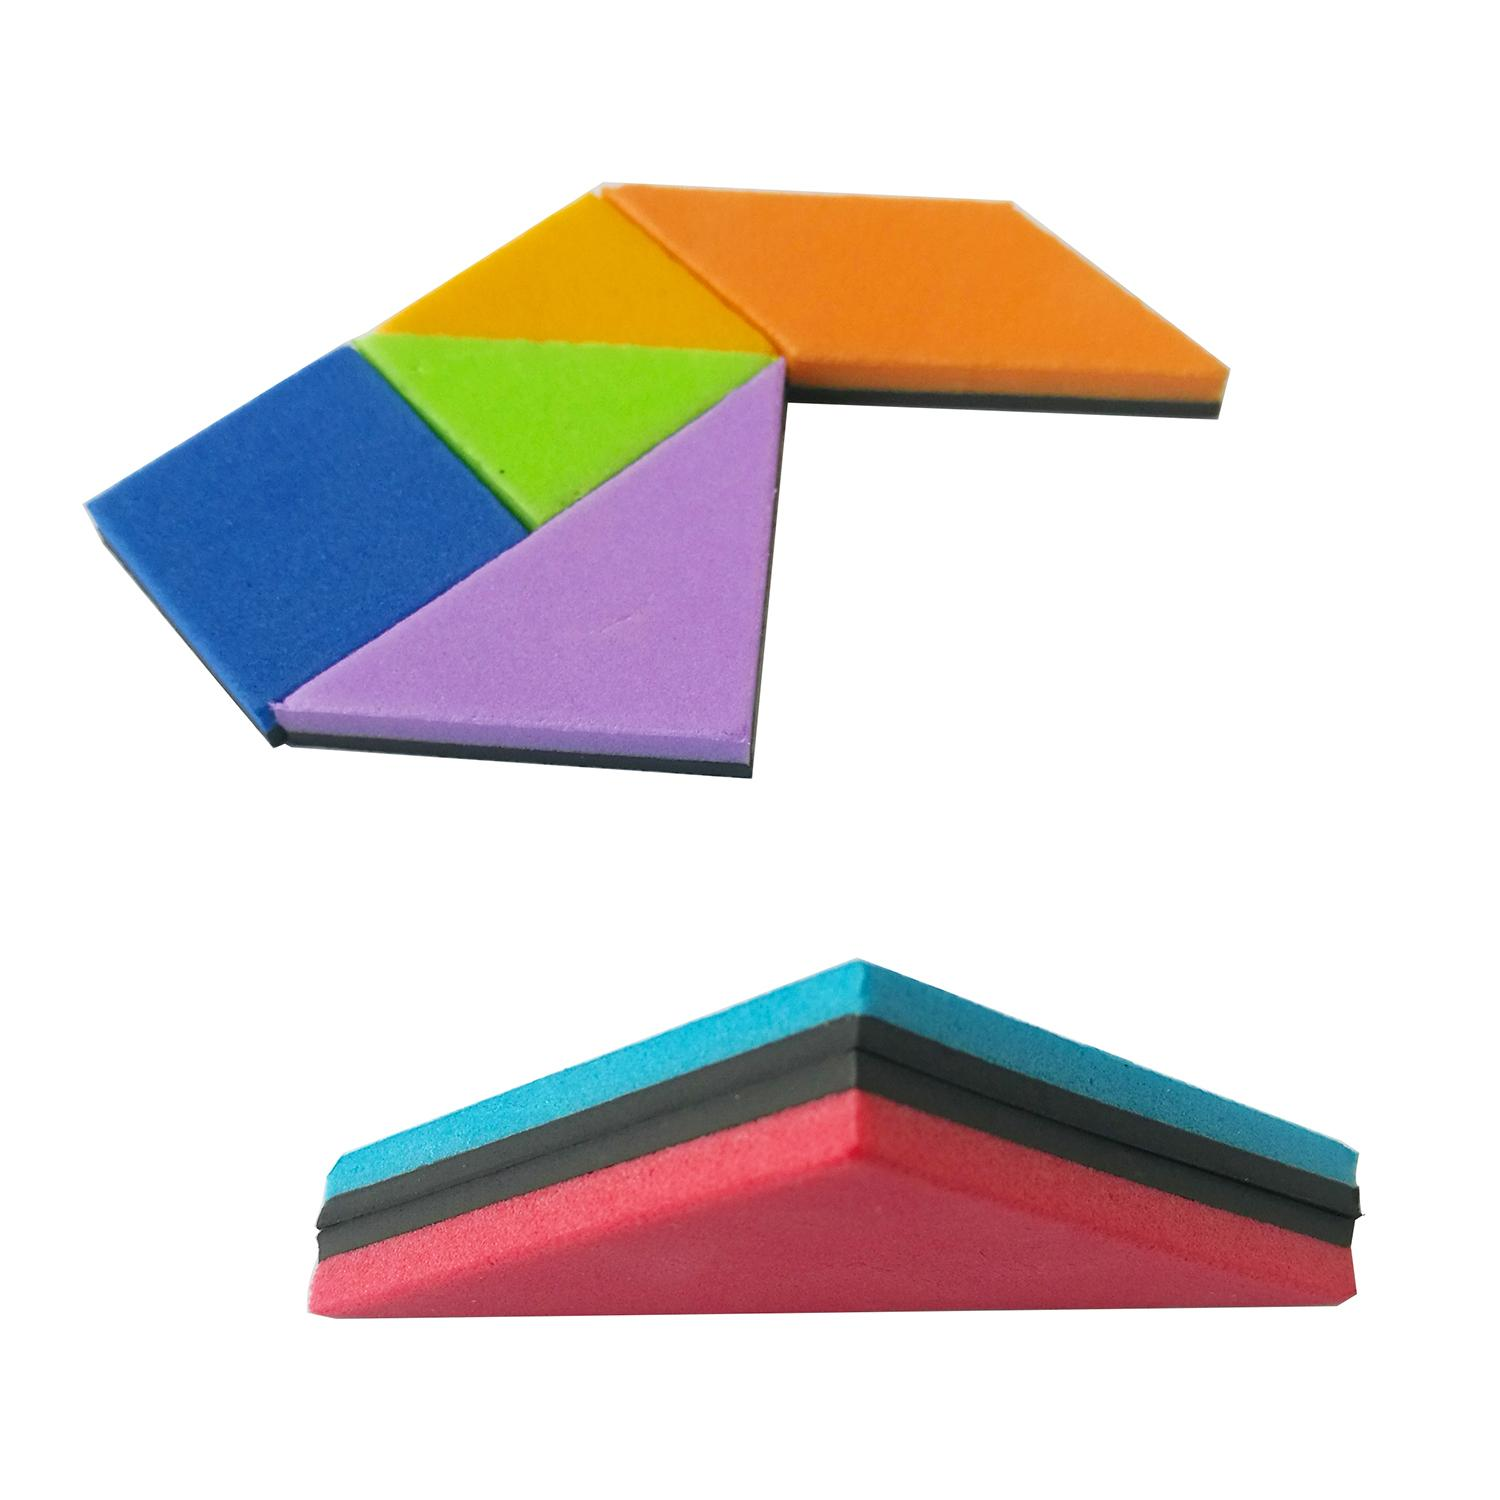 magnetic jigsaw puzzle creative kid' educational toy tangram 2